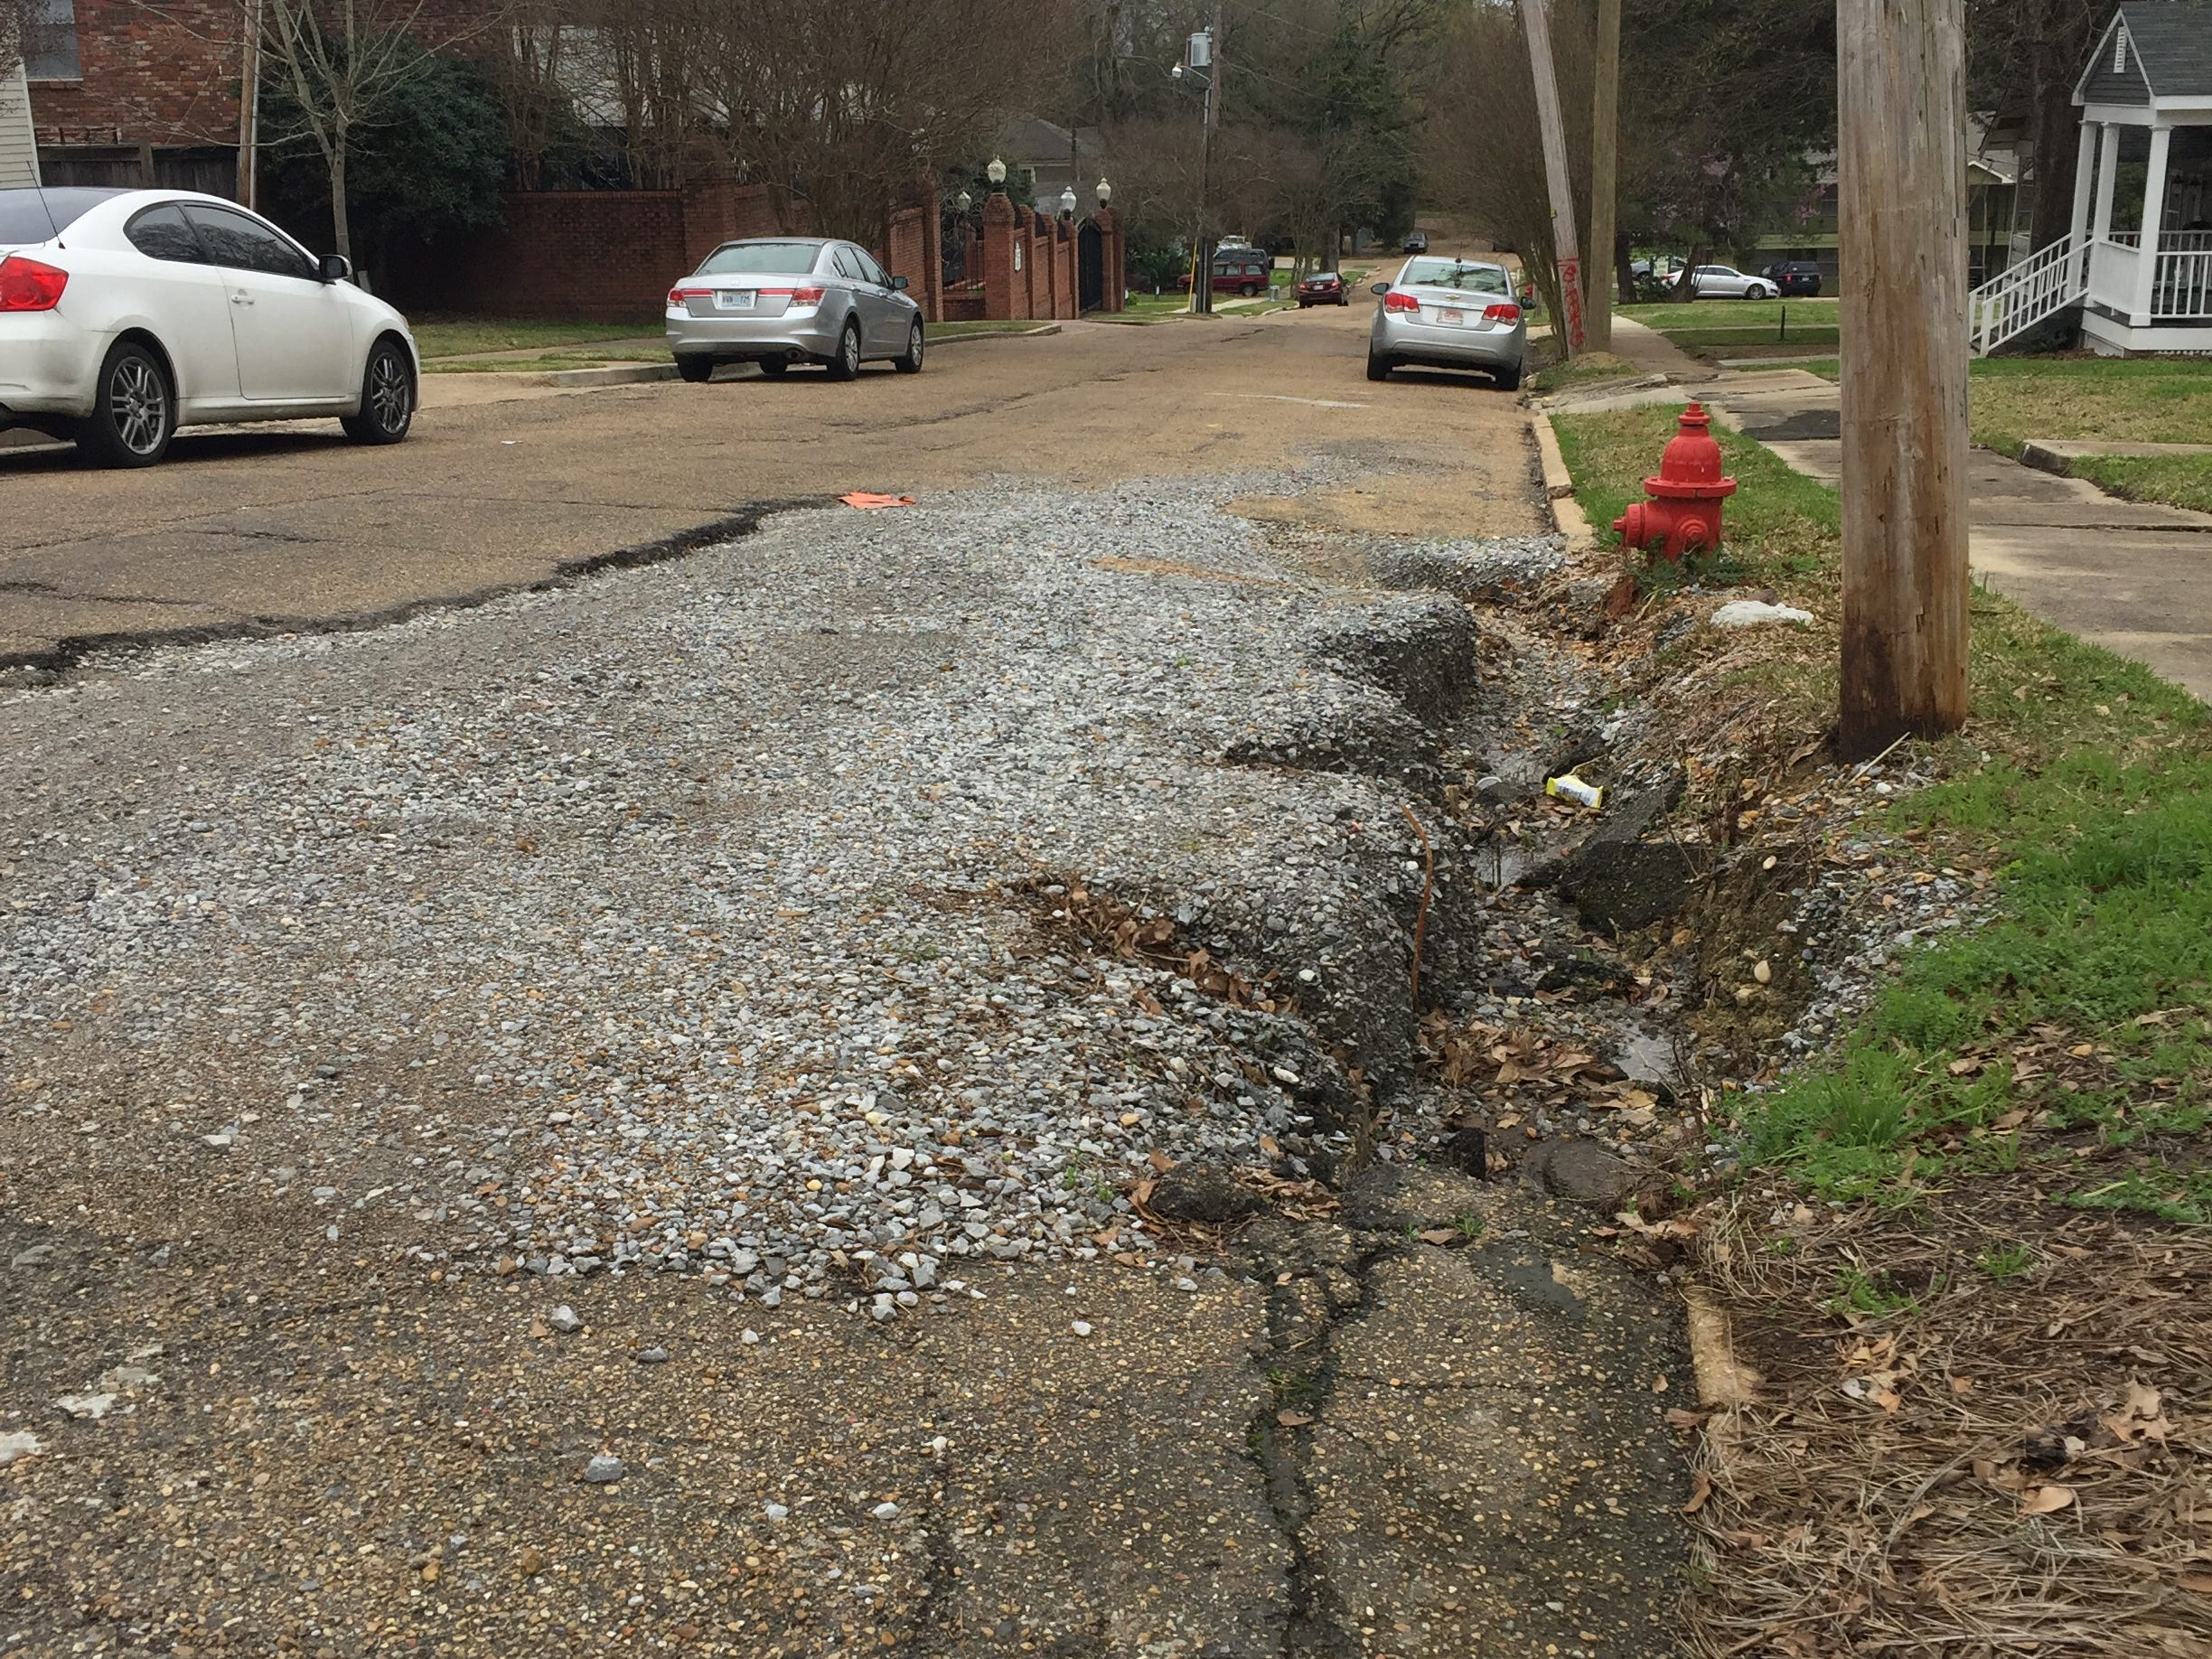 Drivers on the 900 block of Harding St. in Jackson's Belhaven neighborhood must deal with this street daily, pictured here on Saturday, March 2, 2019, including those living in an apartment complex.